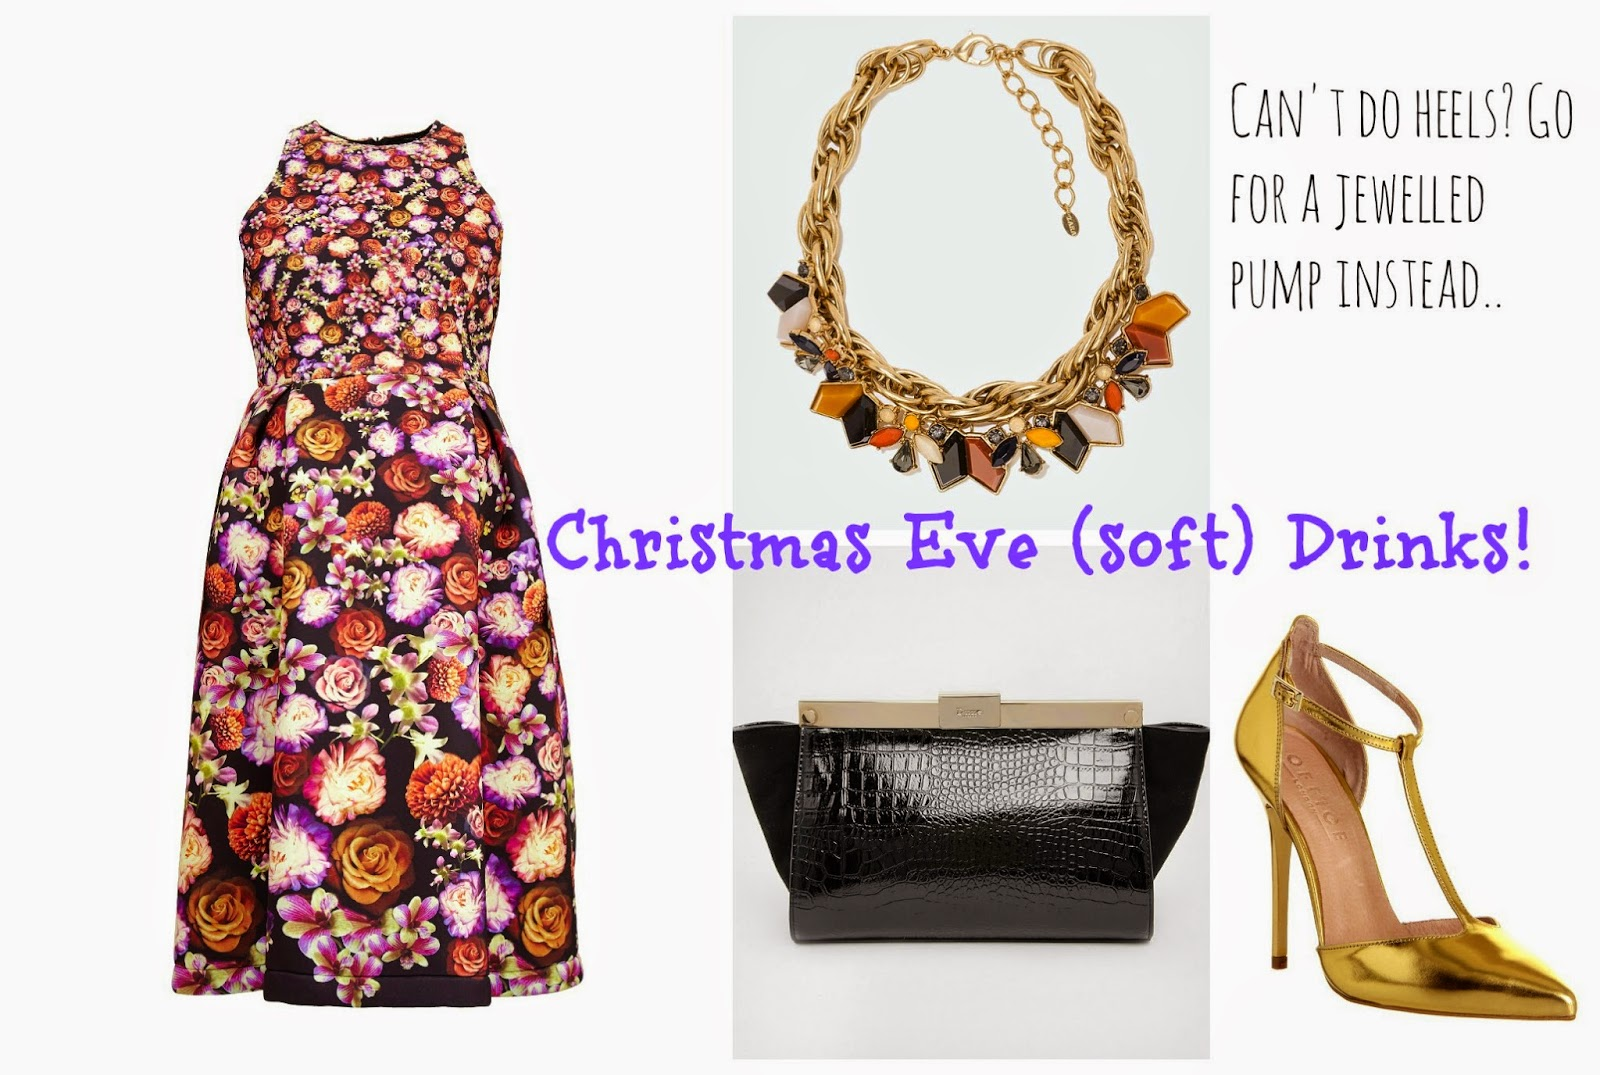 ASOS Christmas Maternity & party dress *GIVEAWAY* | asks | maturity fashion } christmas party dress | mamasvib | giveaway | competition | free dress | asks maternity | floral dress | what to wear over the festive season | fashion | style | stylist | asia dress | mamasVIb blogger | bonita turner | twitter comp | boxing day fashion | new years eve dresses | maternity wear | maternity style | asos christmas maternity | fashionable mums | pregnancy fashion | Party clothes | give away | win a dress